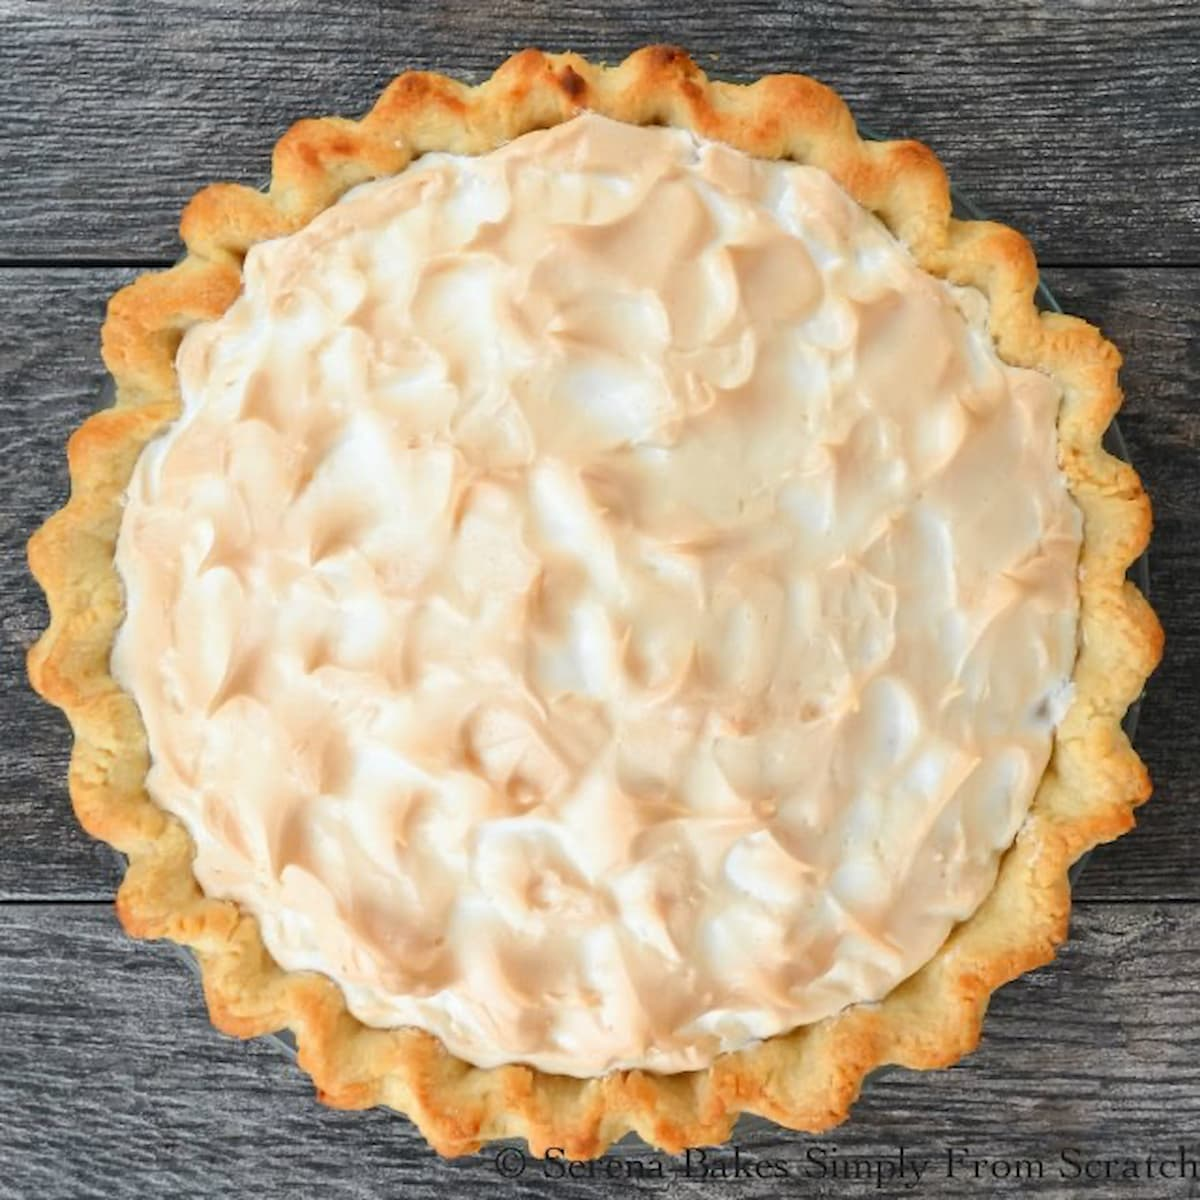 A whole Lemon Meringue Pie topped with Weep Free Meringue and Flaky Pie Crust.